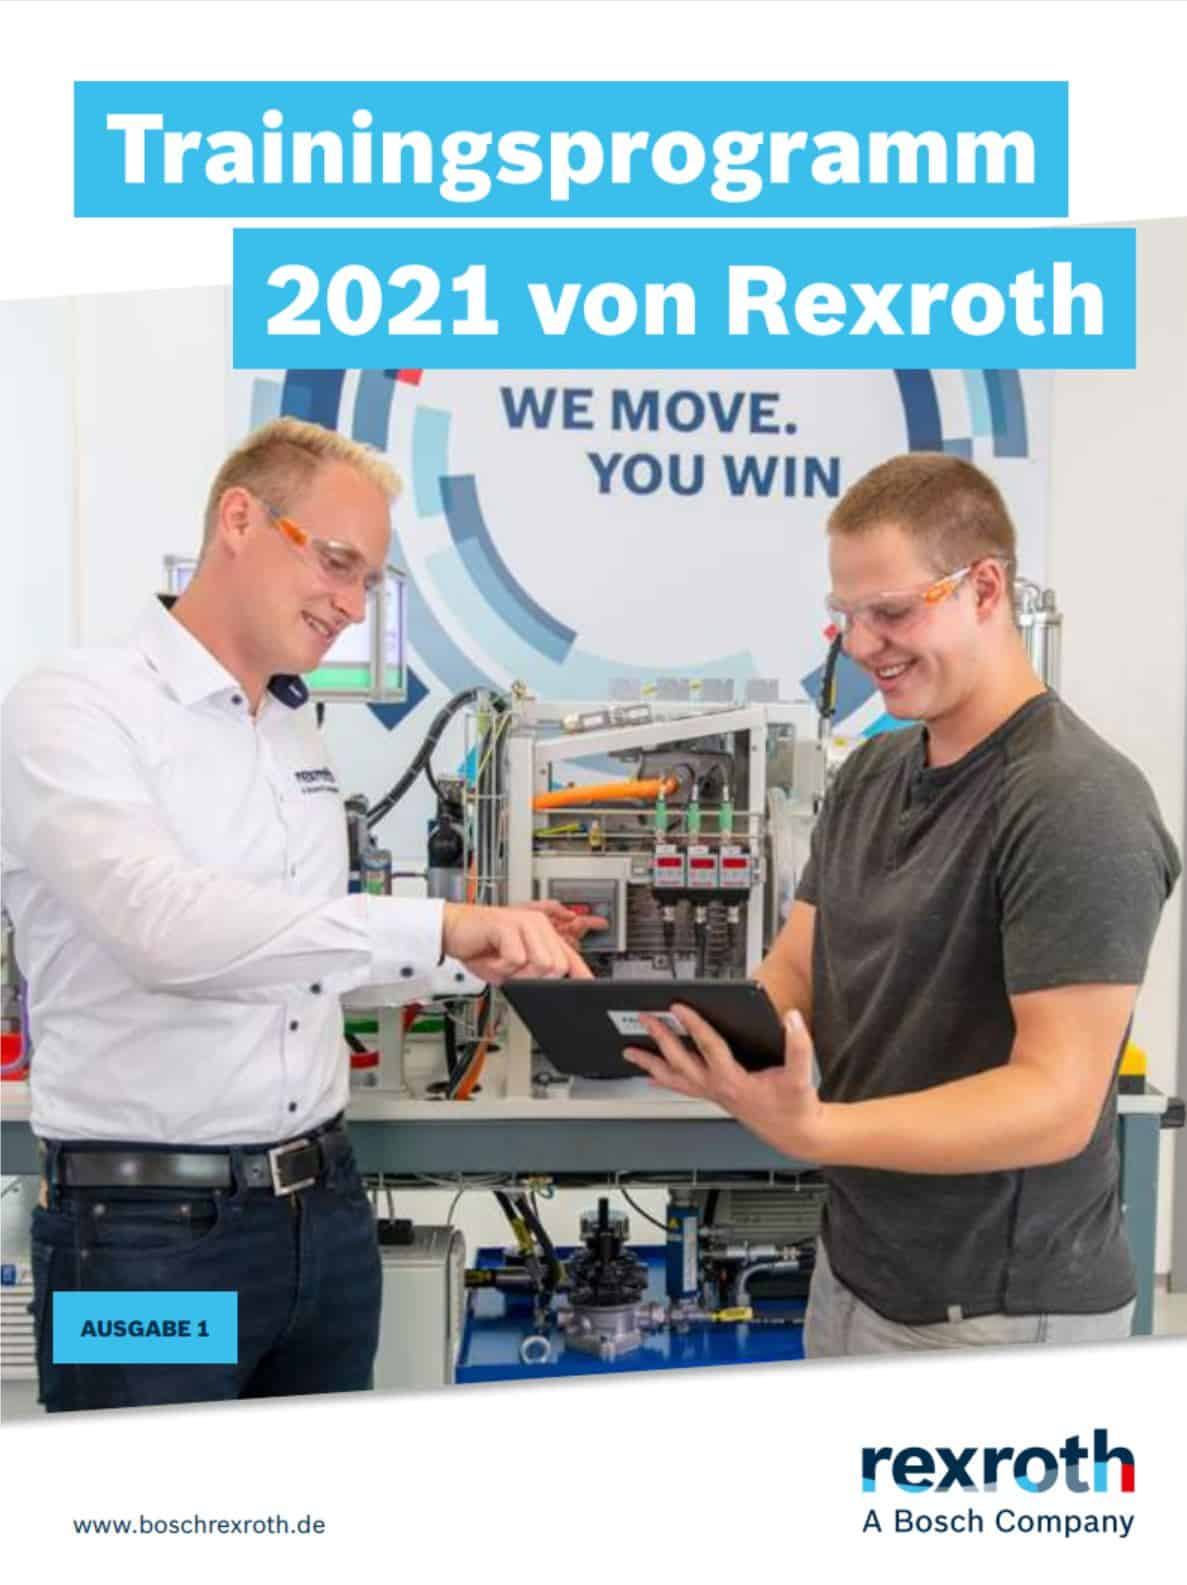 Bosch Rexroth Trainingsprogramm 2021